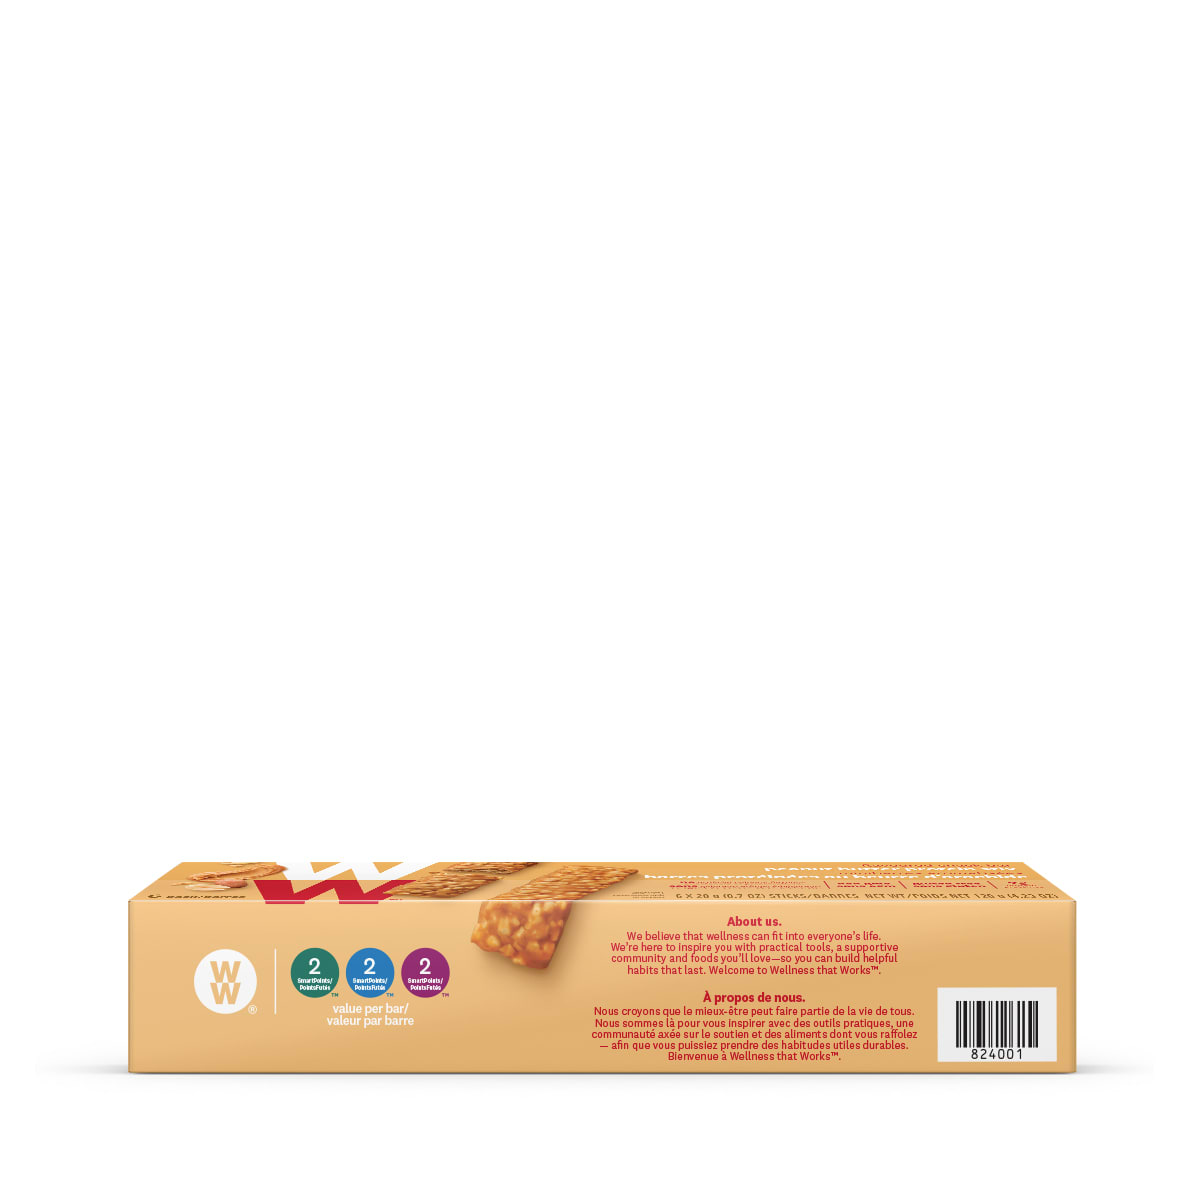 Peanut Butter Protein Stix - side of the box